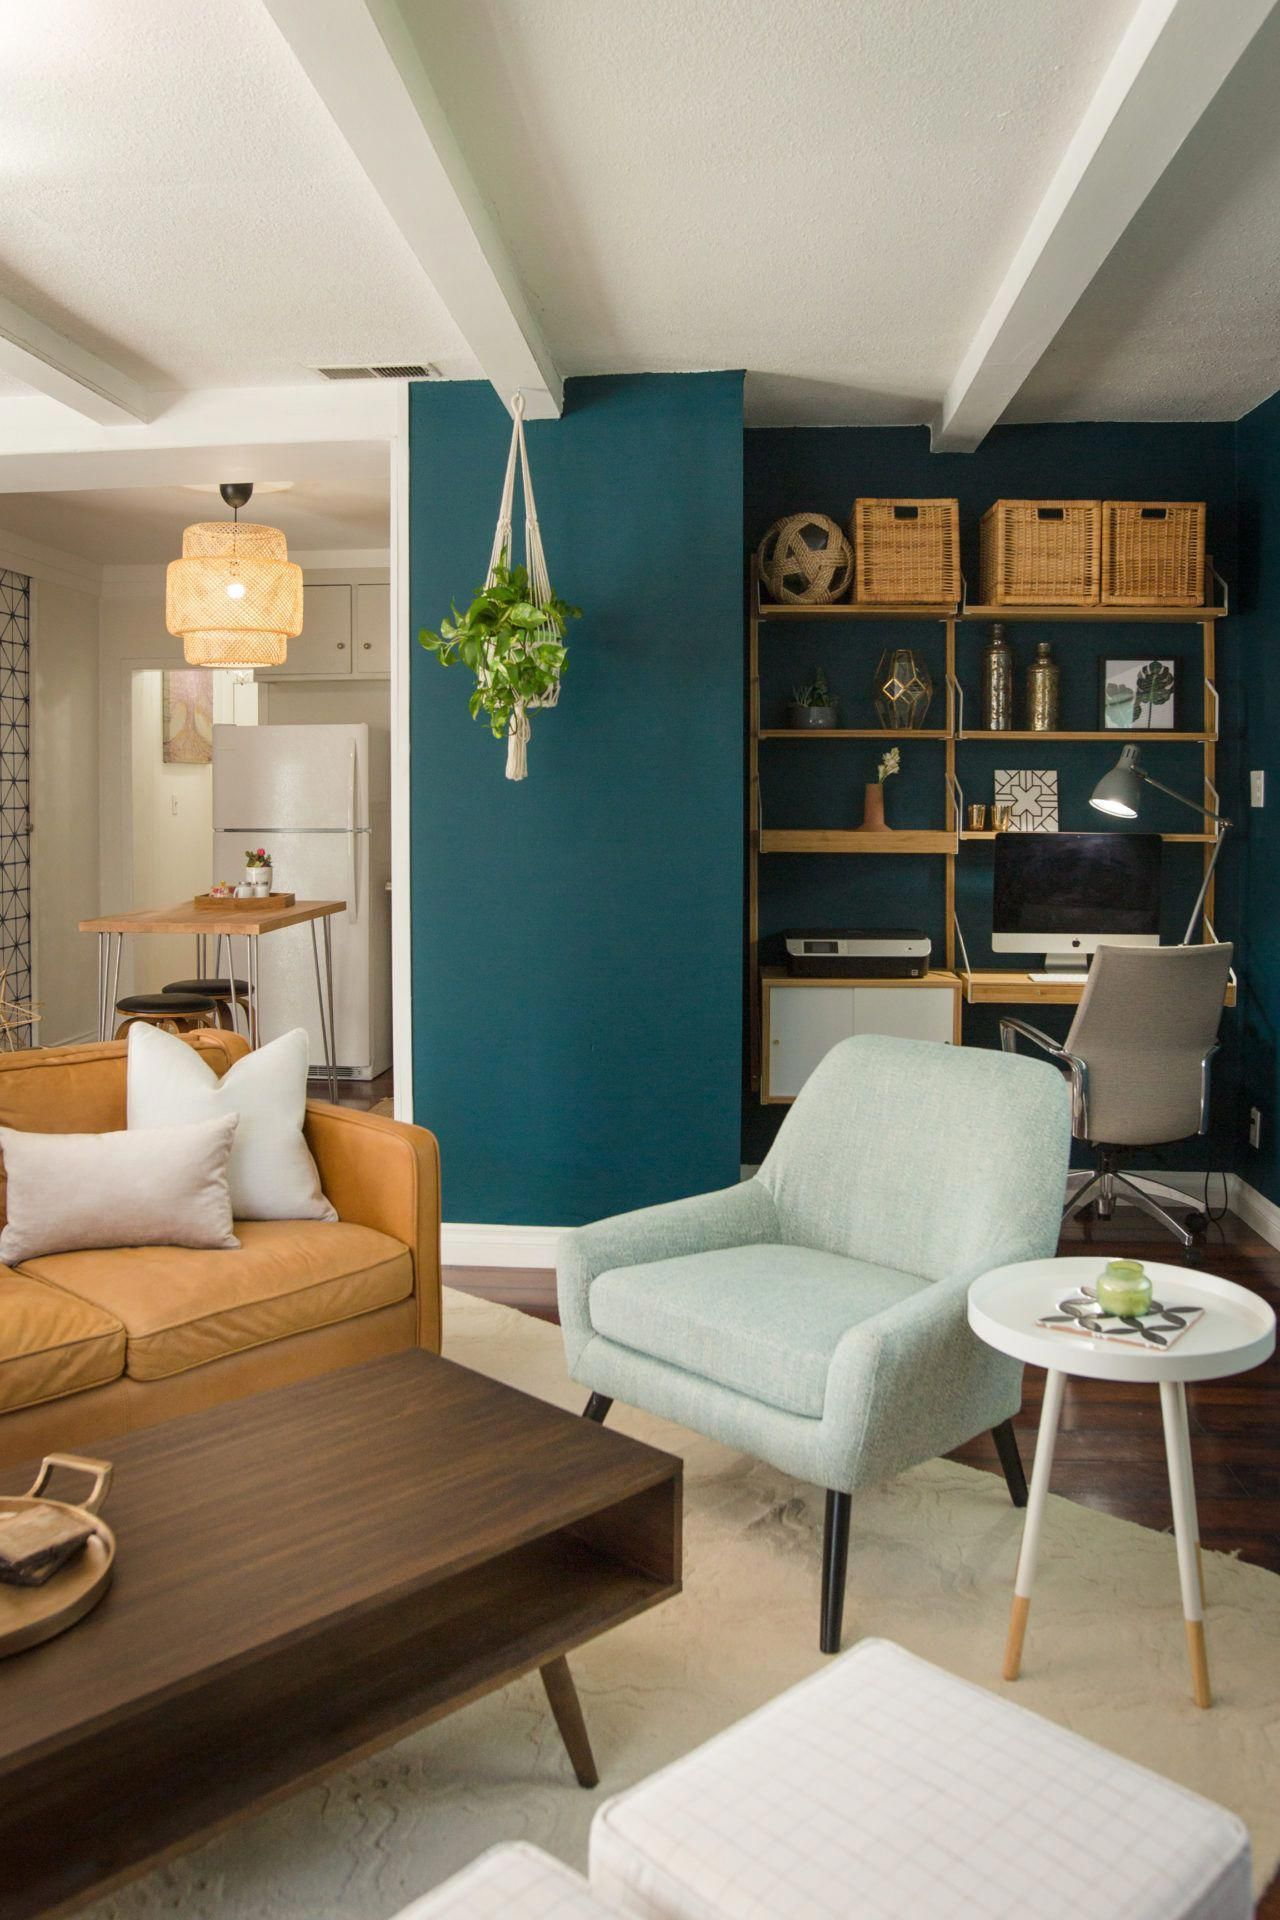 Living Room Wall Decor Ideas How To Decorate My Living Room Best Decorating Ideas For Living Room In 2020 Living Room Green Mustard Living Rooms Teal Living Rooms